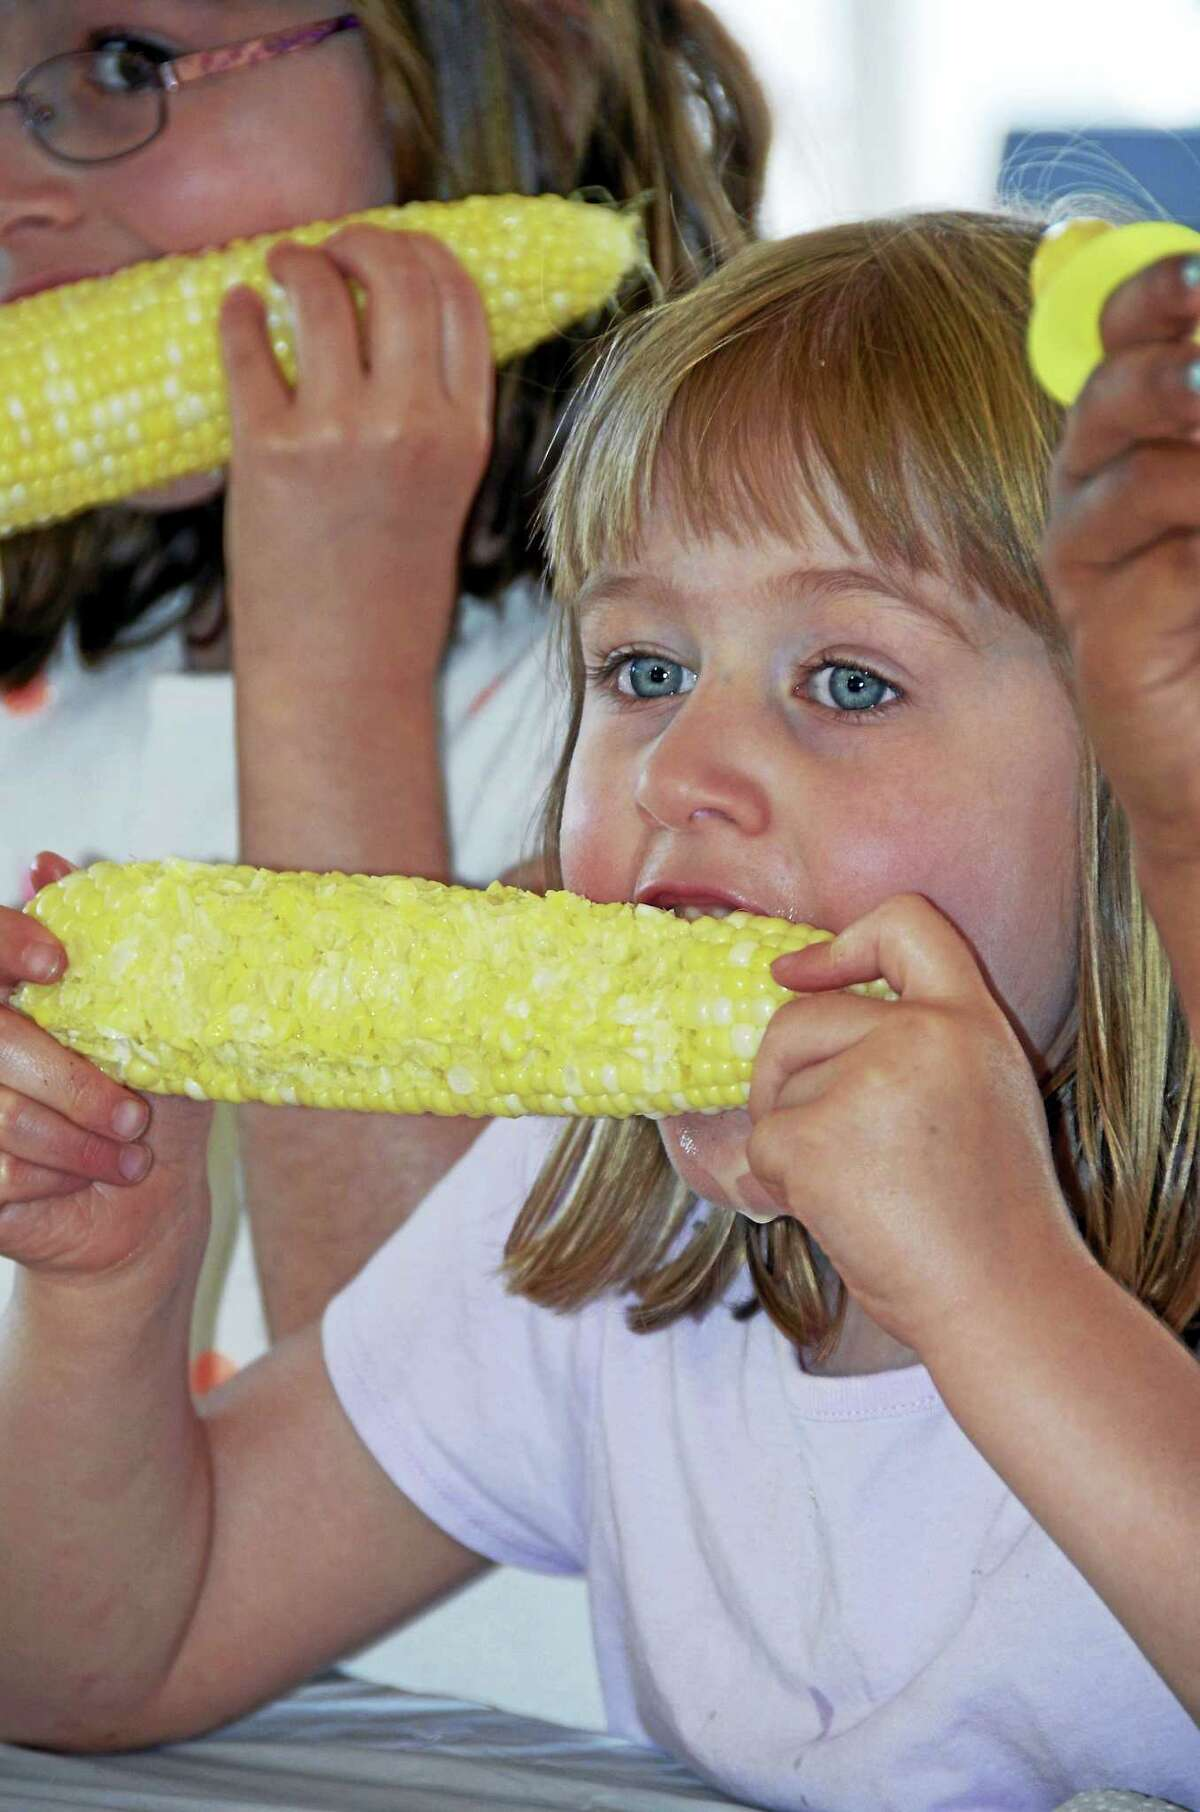 The joy of eating corn is on display at the festival.